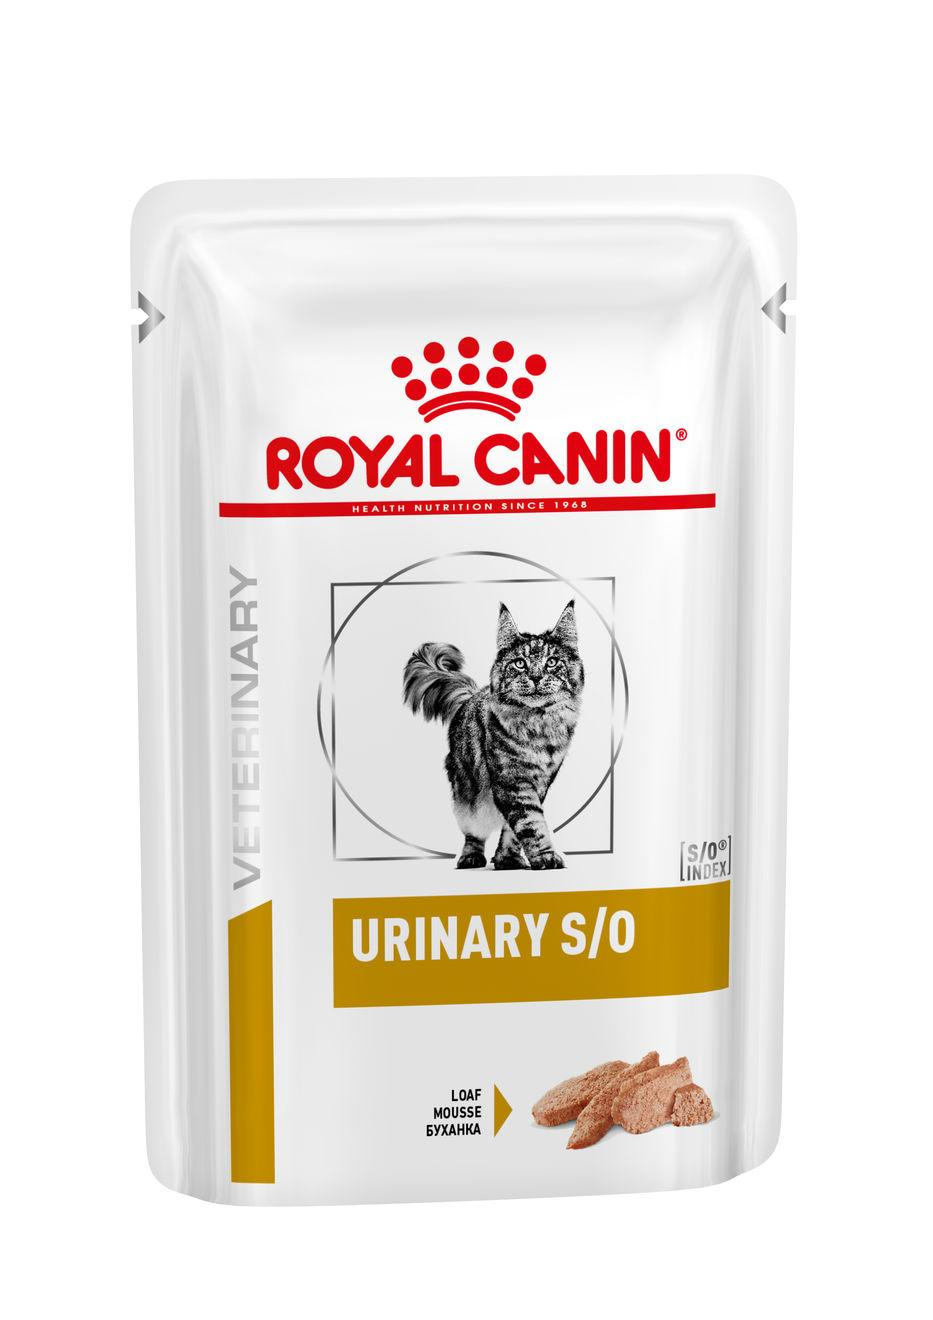 Royal Canin Veterinary Health Nutrition Cat URINARY S/O kapsa in Loaf - 85g